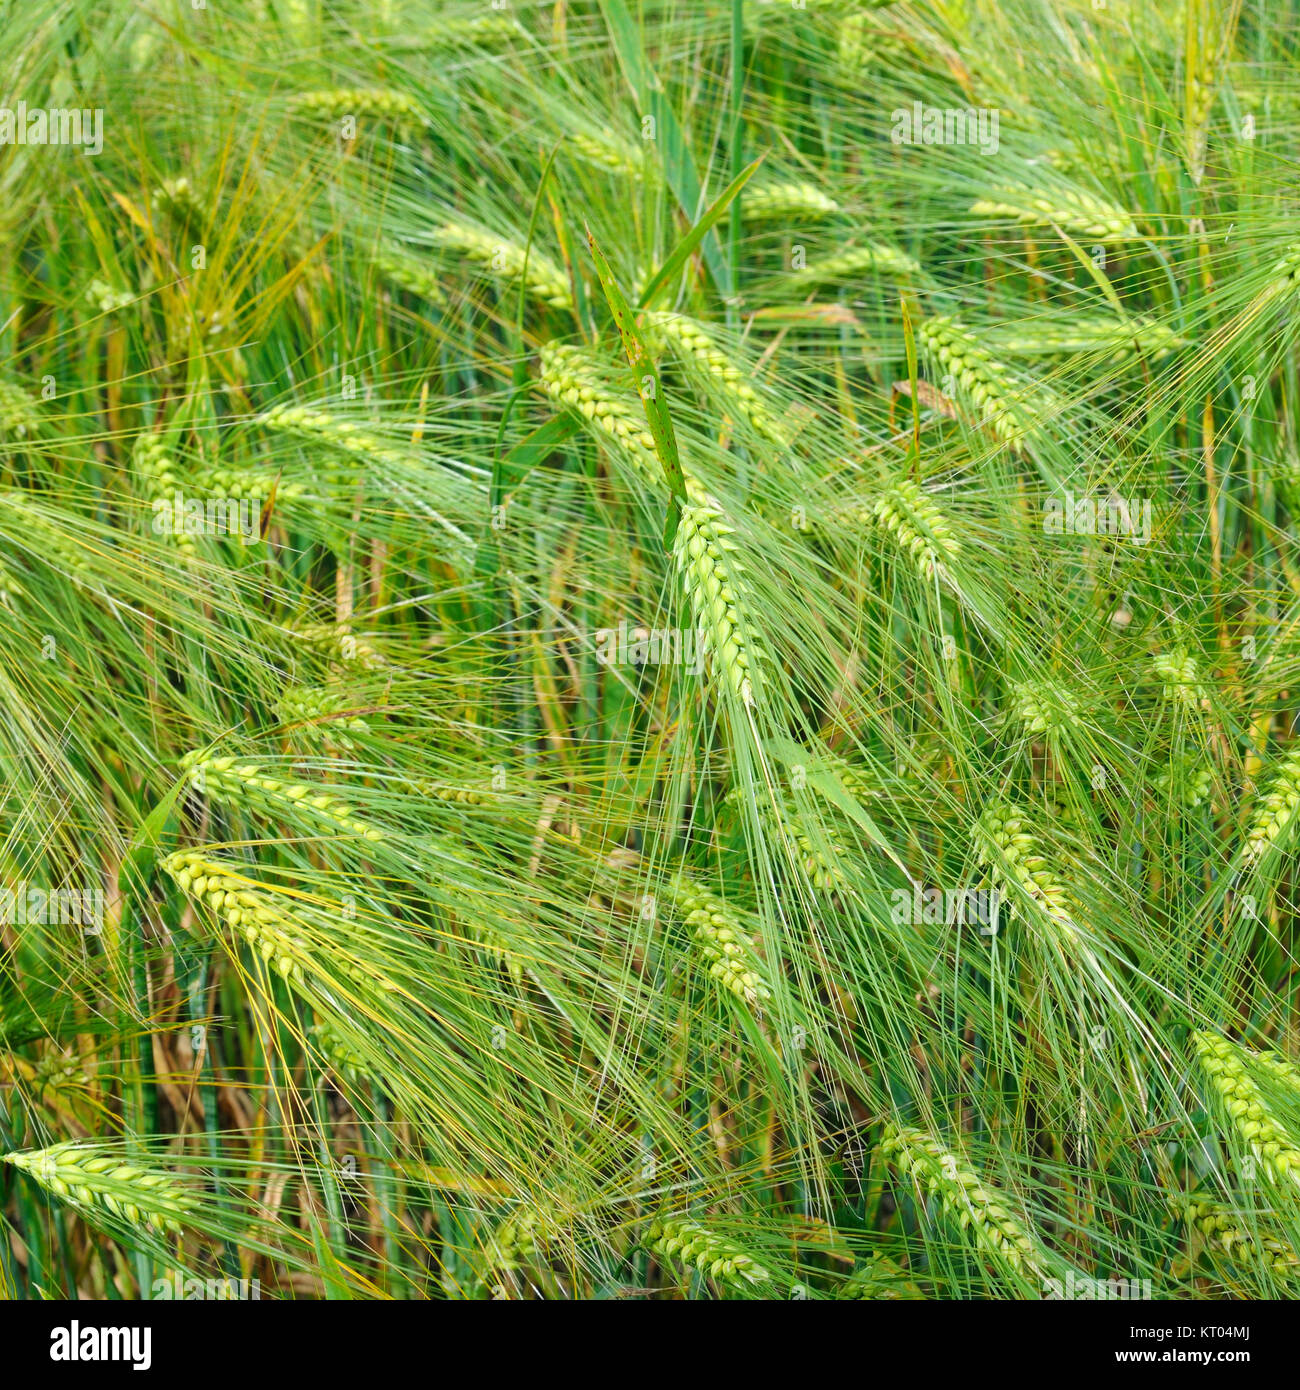 bright background of wheat ears - Stock Image